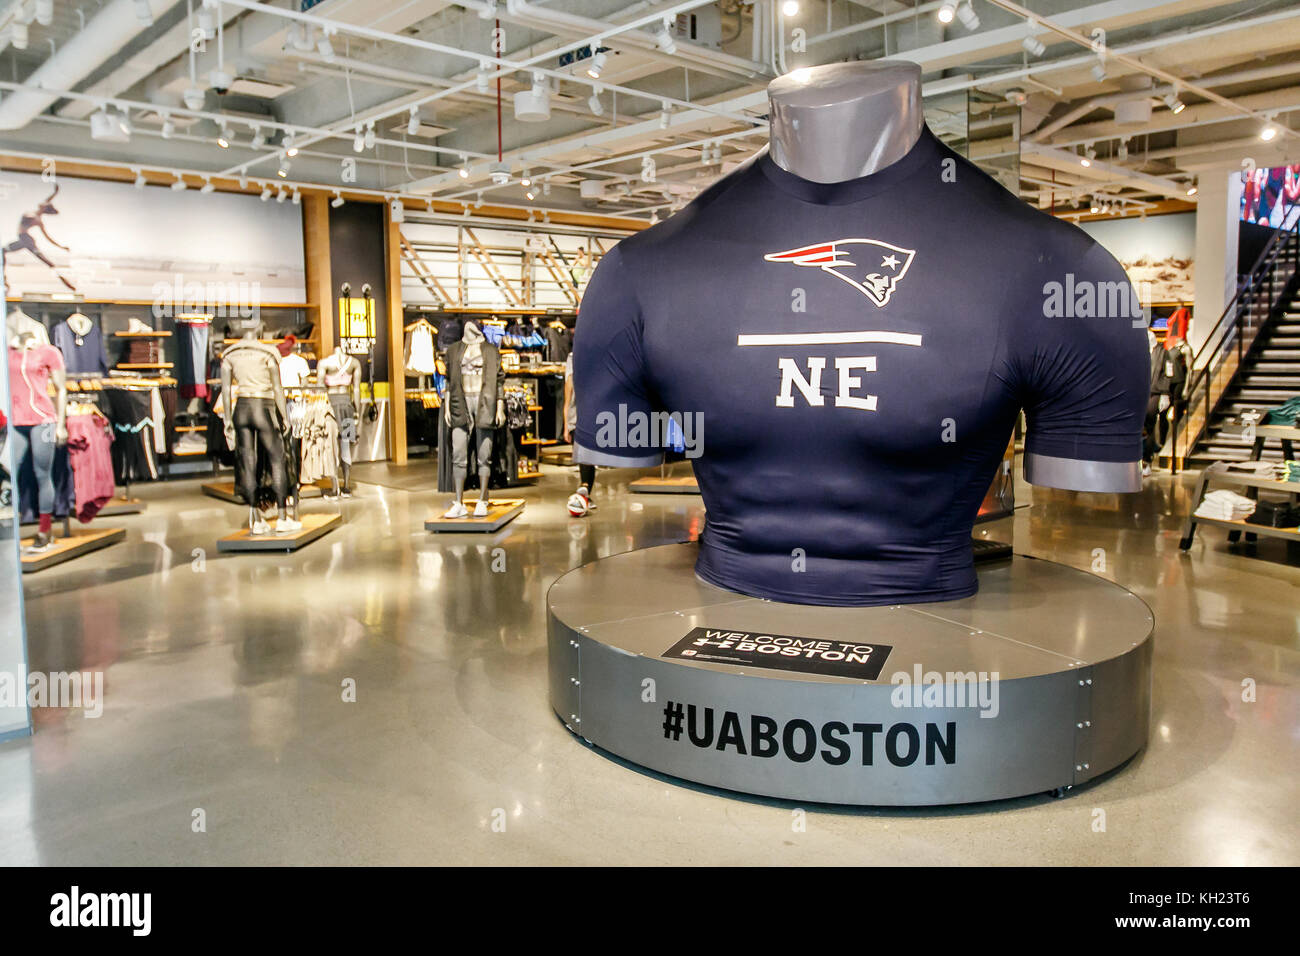 The floor of an Under Armour store inside Prudential Center in Boston. - Stock Image